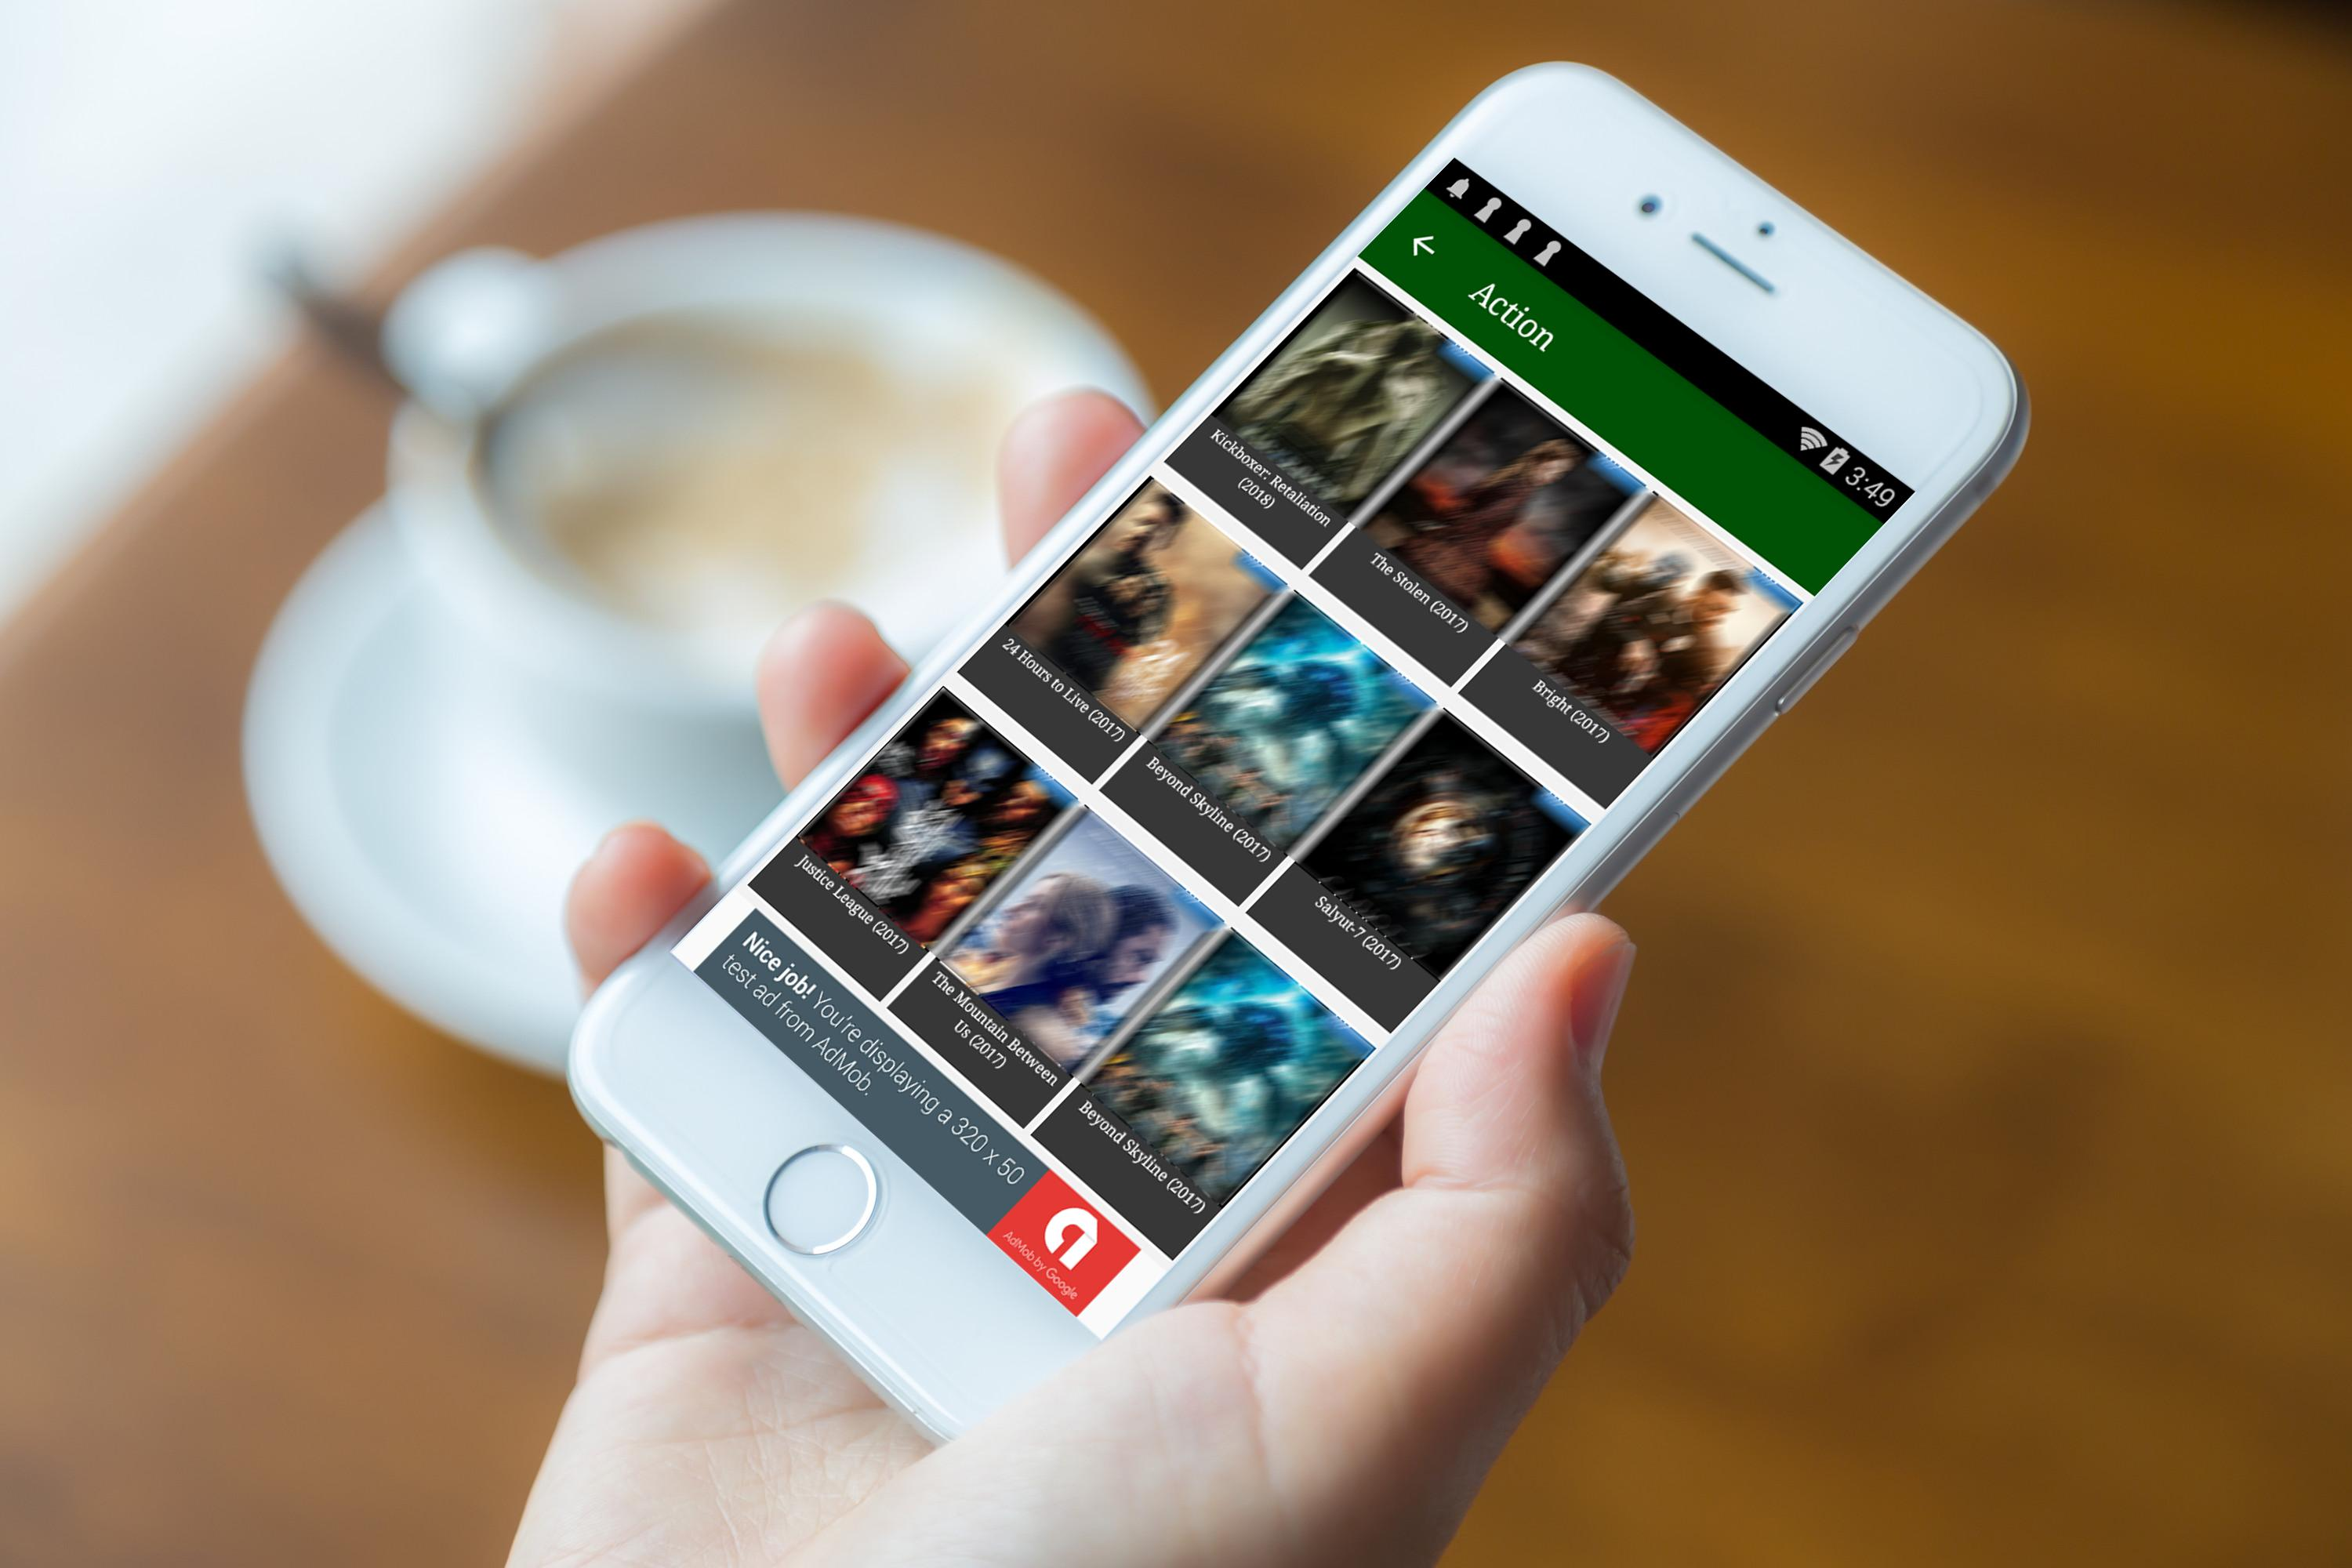 Hot Movies 2018 - Movies HD Premium for Android - APK Download